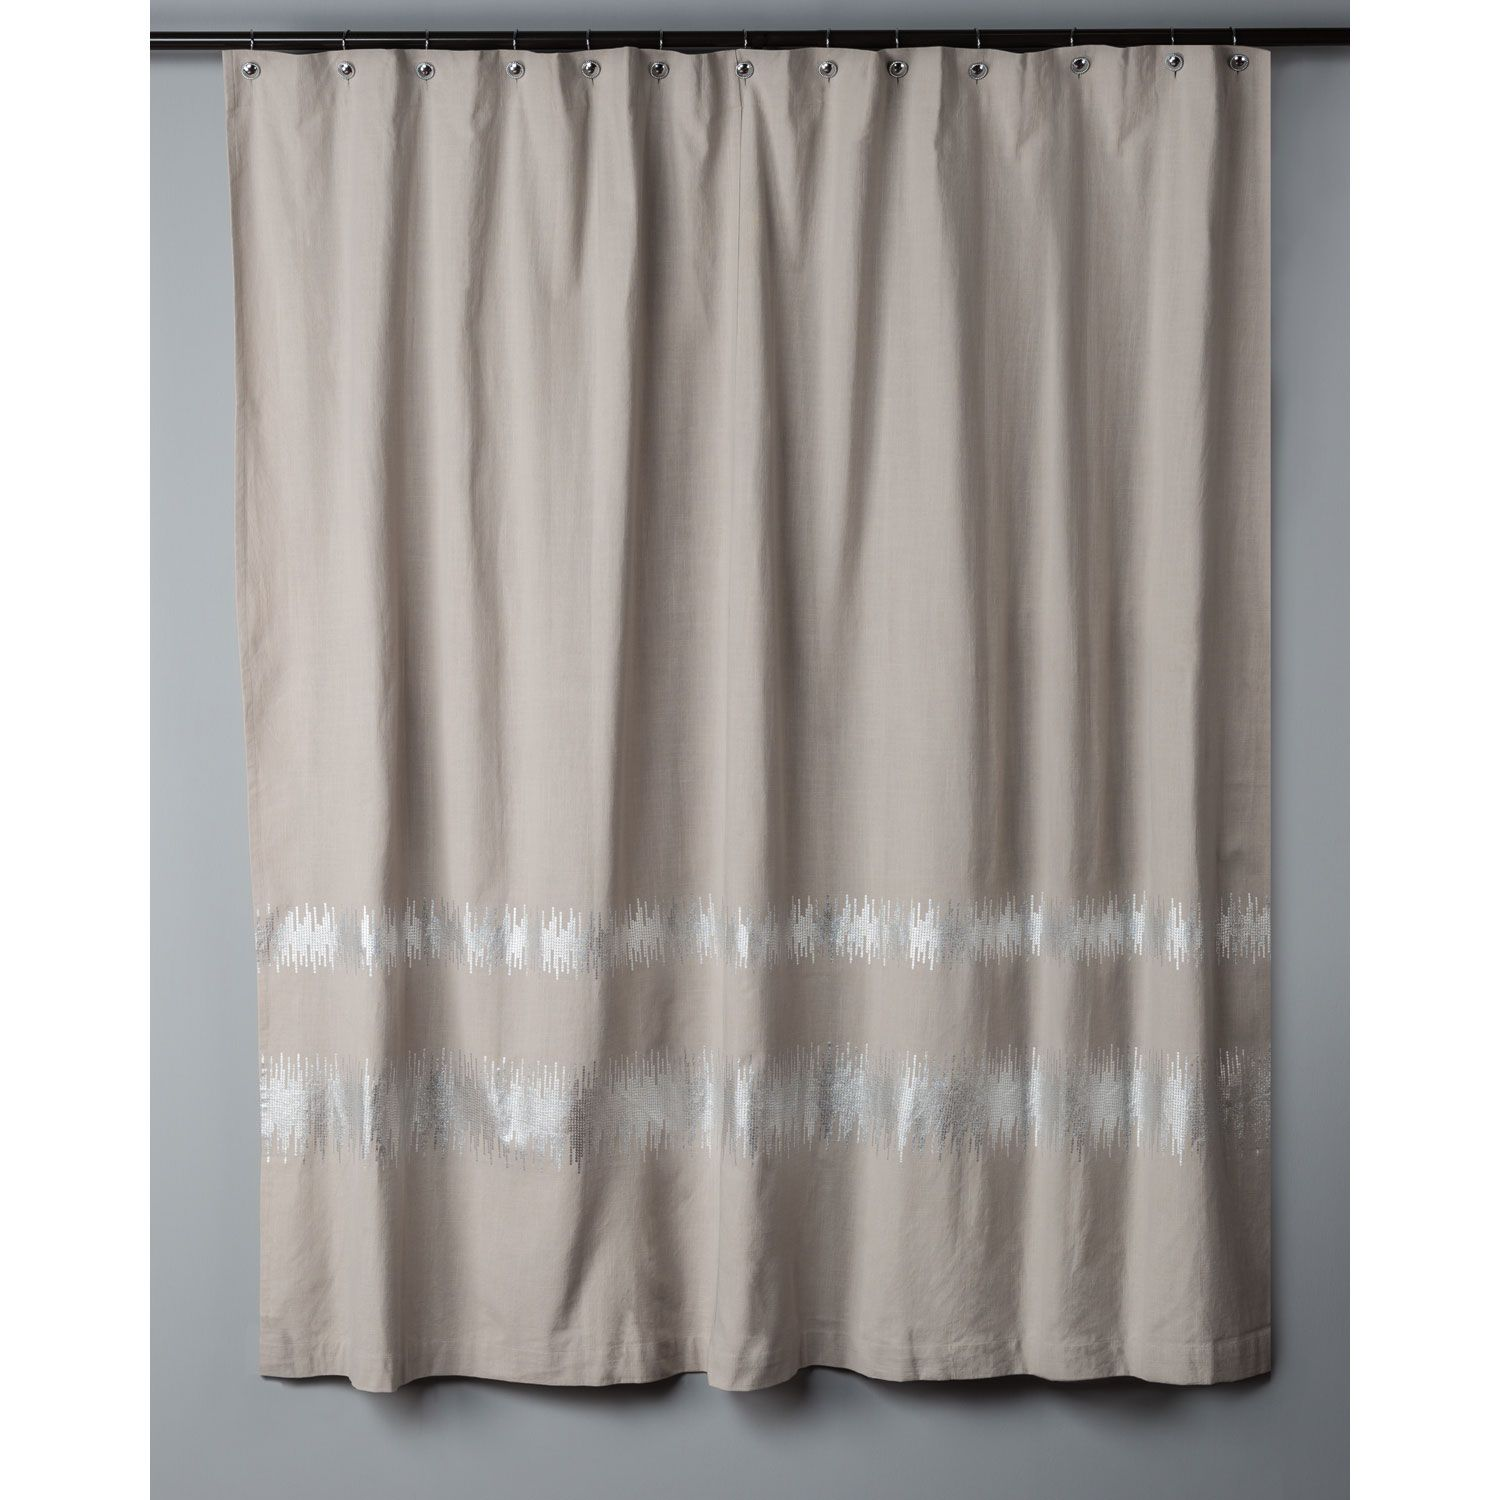 Rizzy Rugs Taupe Shower Curtain Curg00501t3sv7272 Curtains Blue